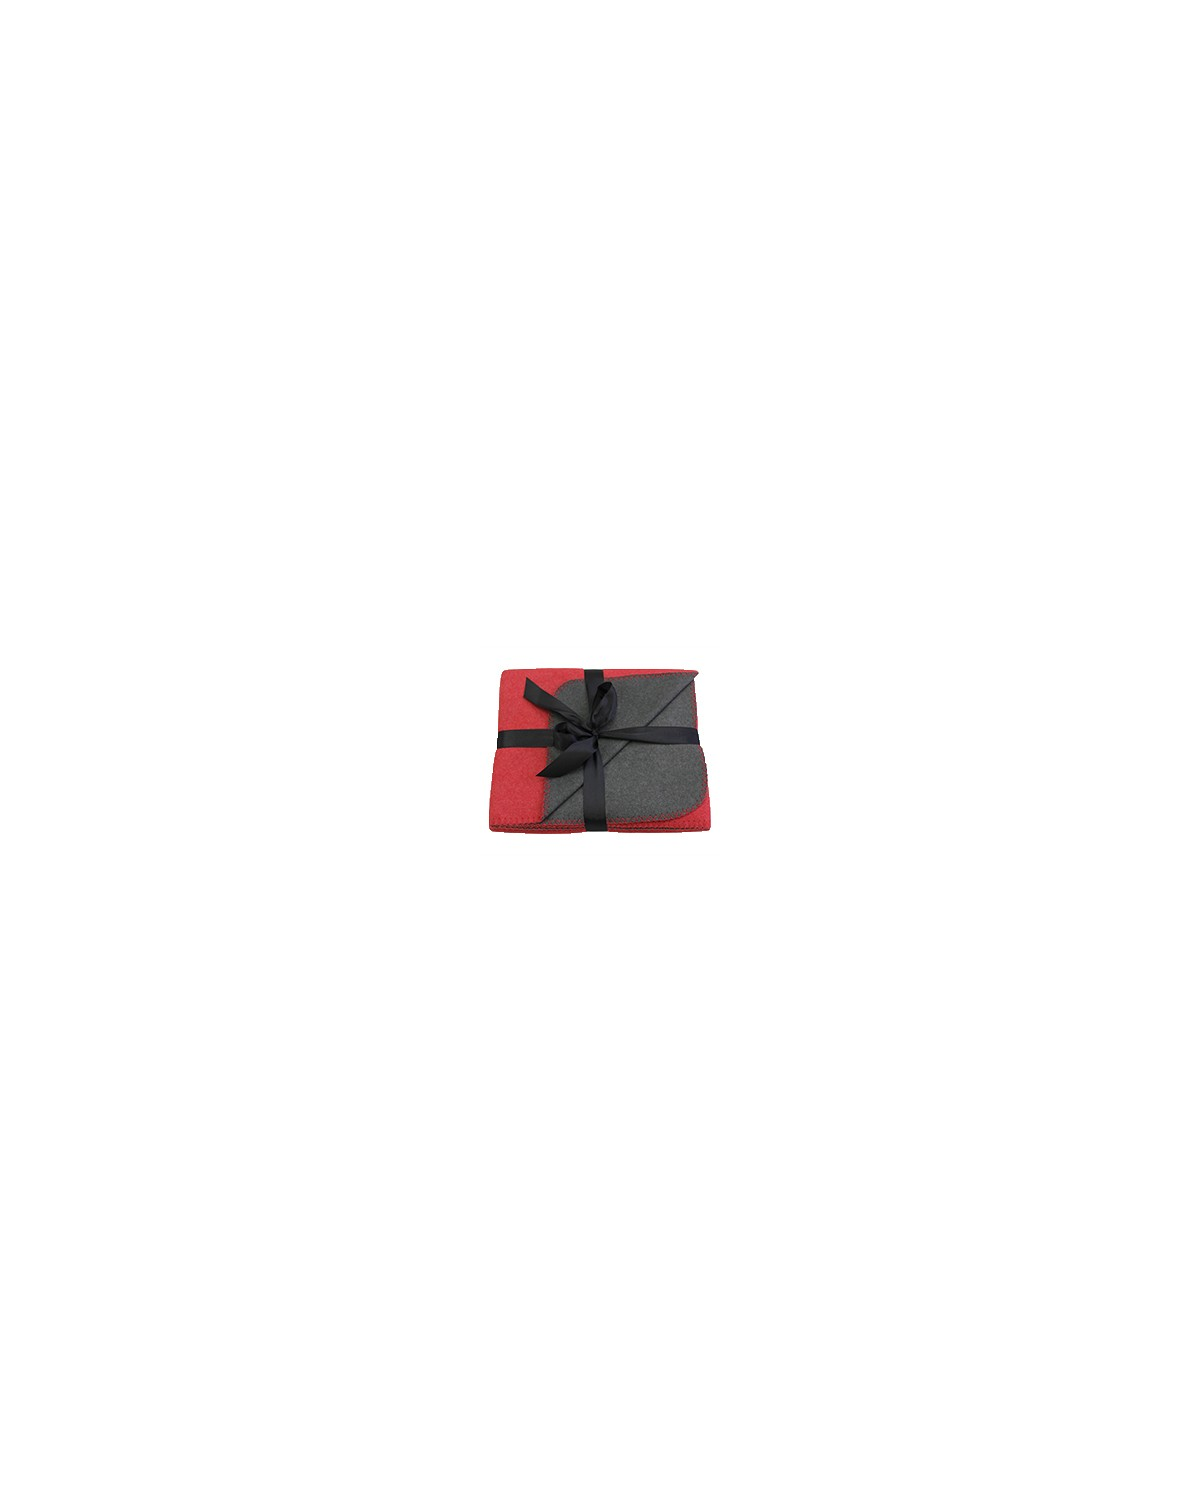 EURO Pro Towels RED/ GRAY